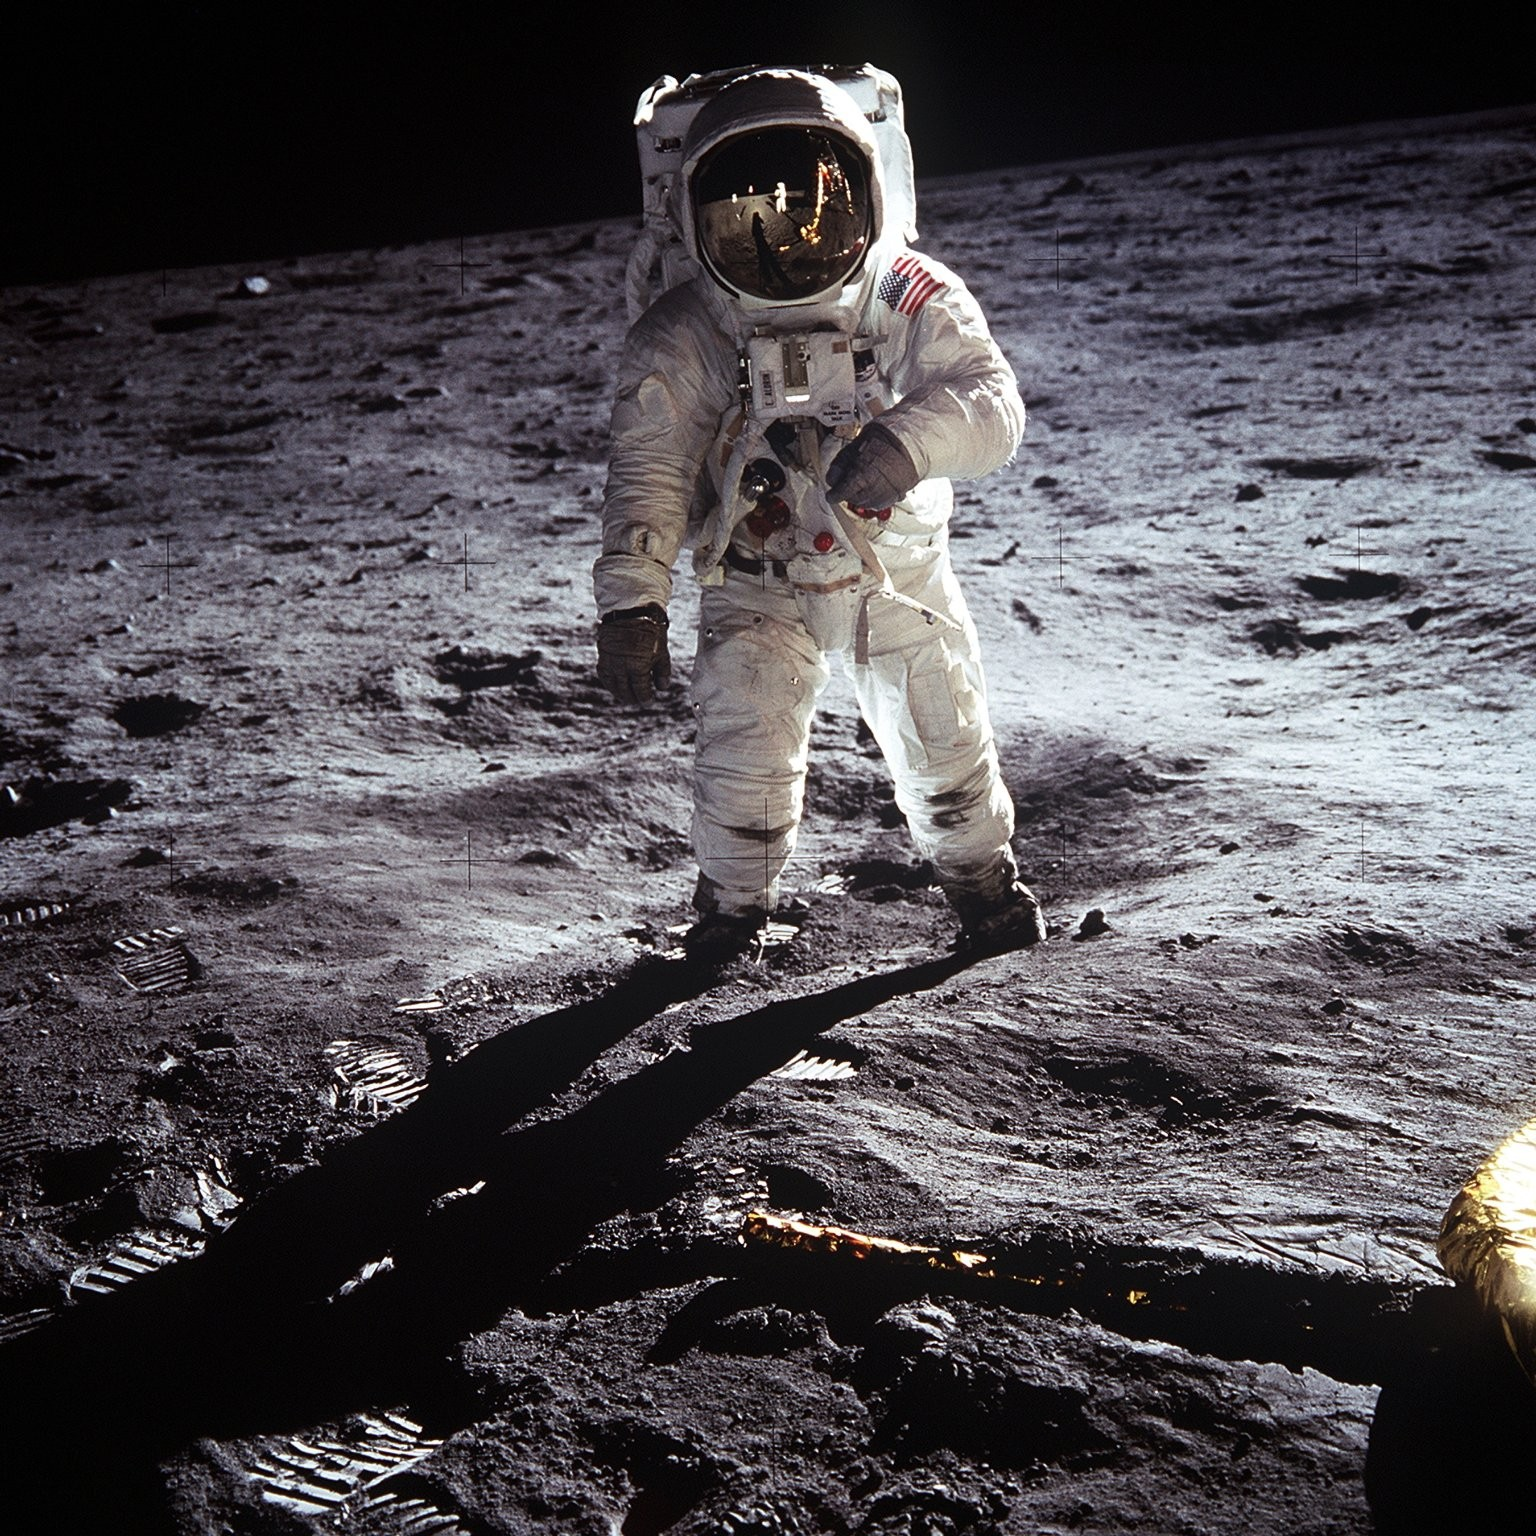 apollo 11 astronaut Buzz aldrin on the moon - image courtesy nasa